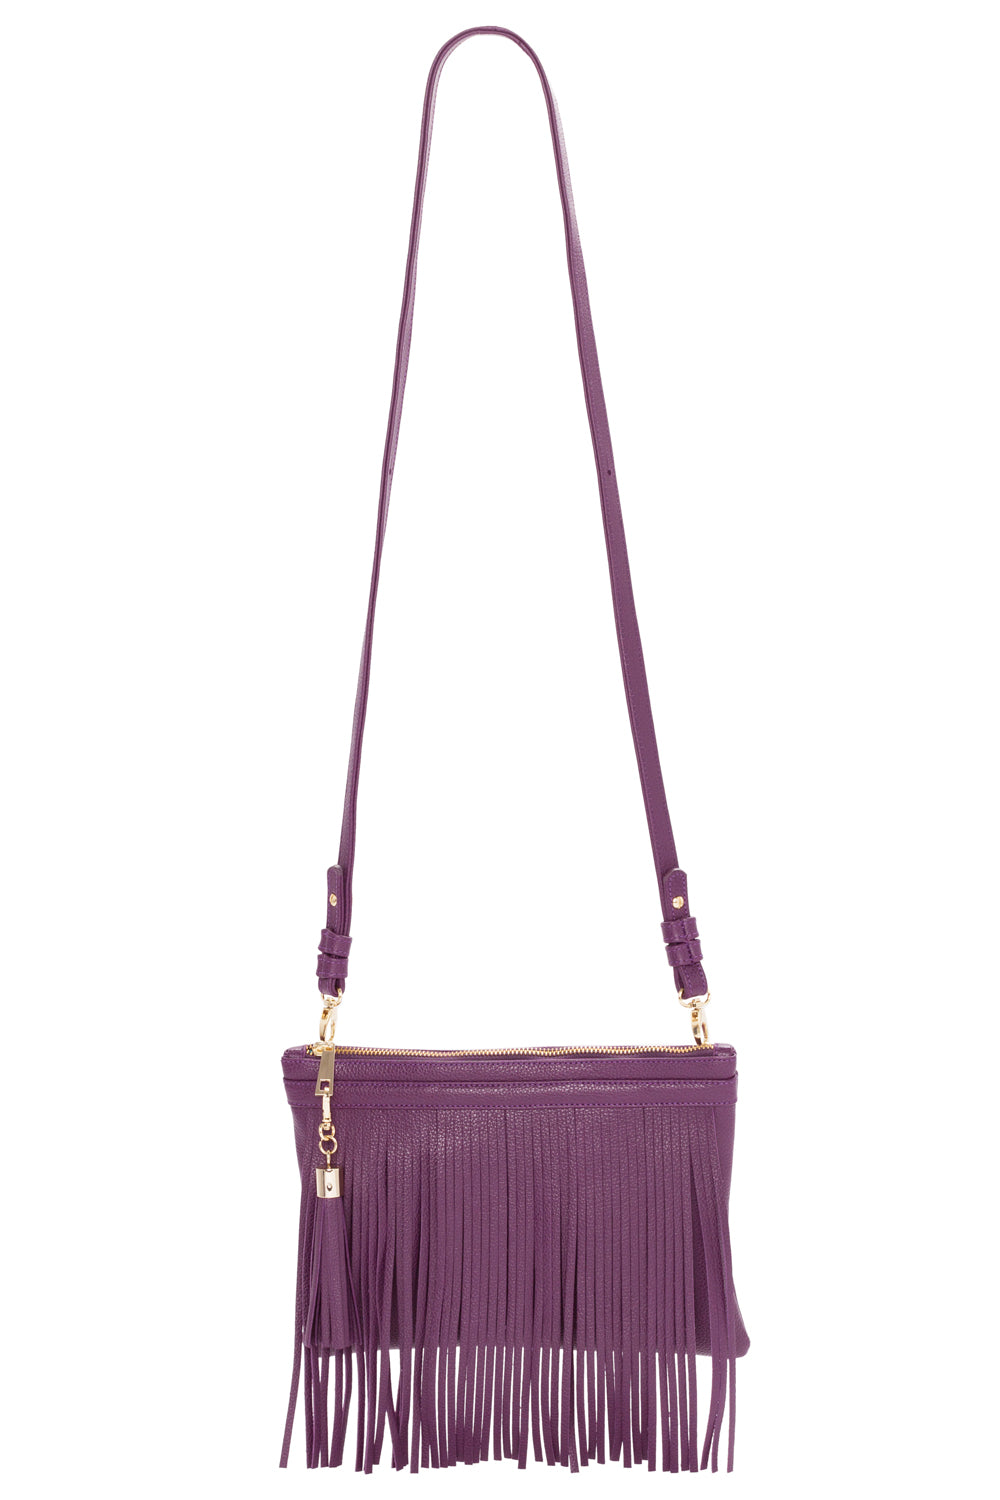 Eggplant Purple Leather 'Taylea Mini' Shoulder Bag | Mel Boteri | Front View